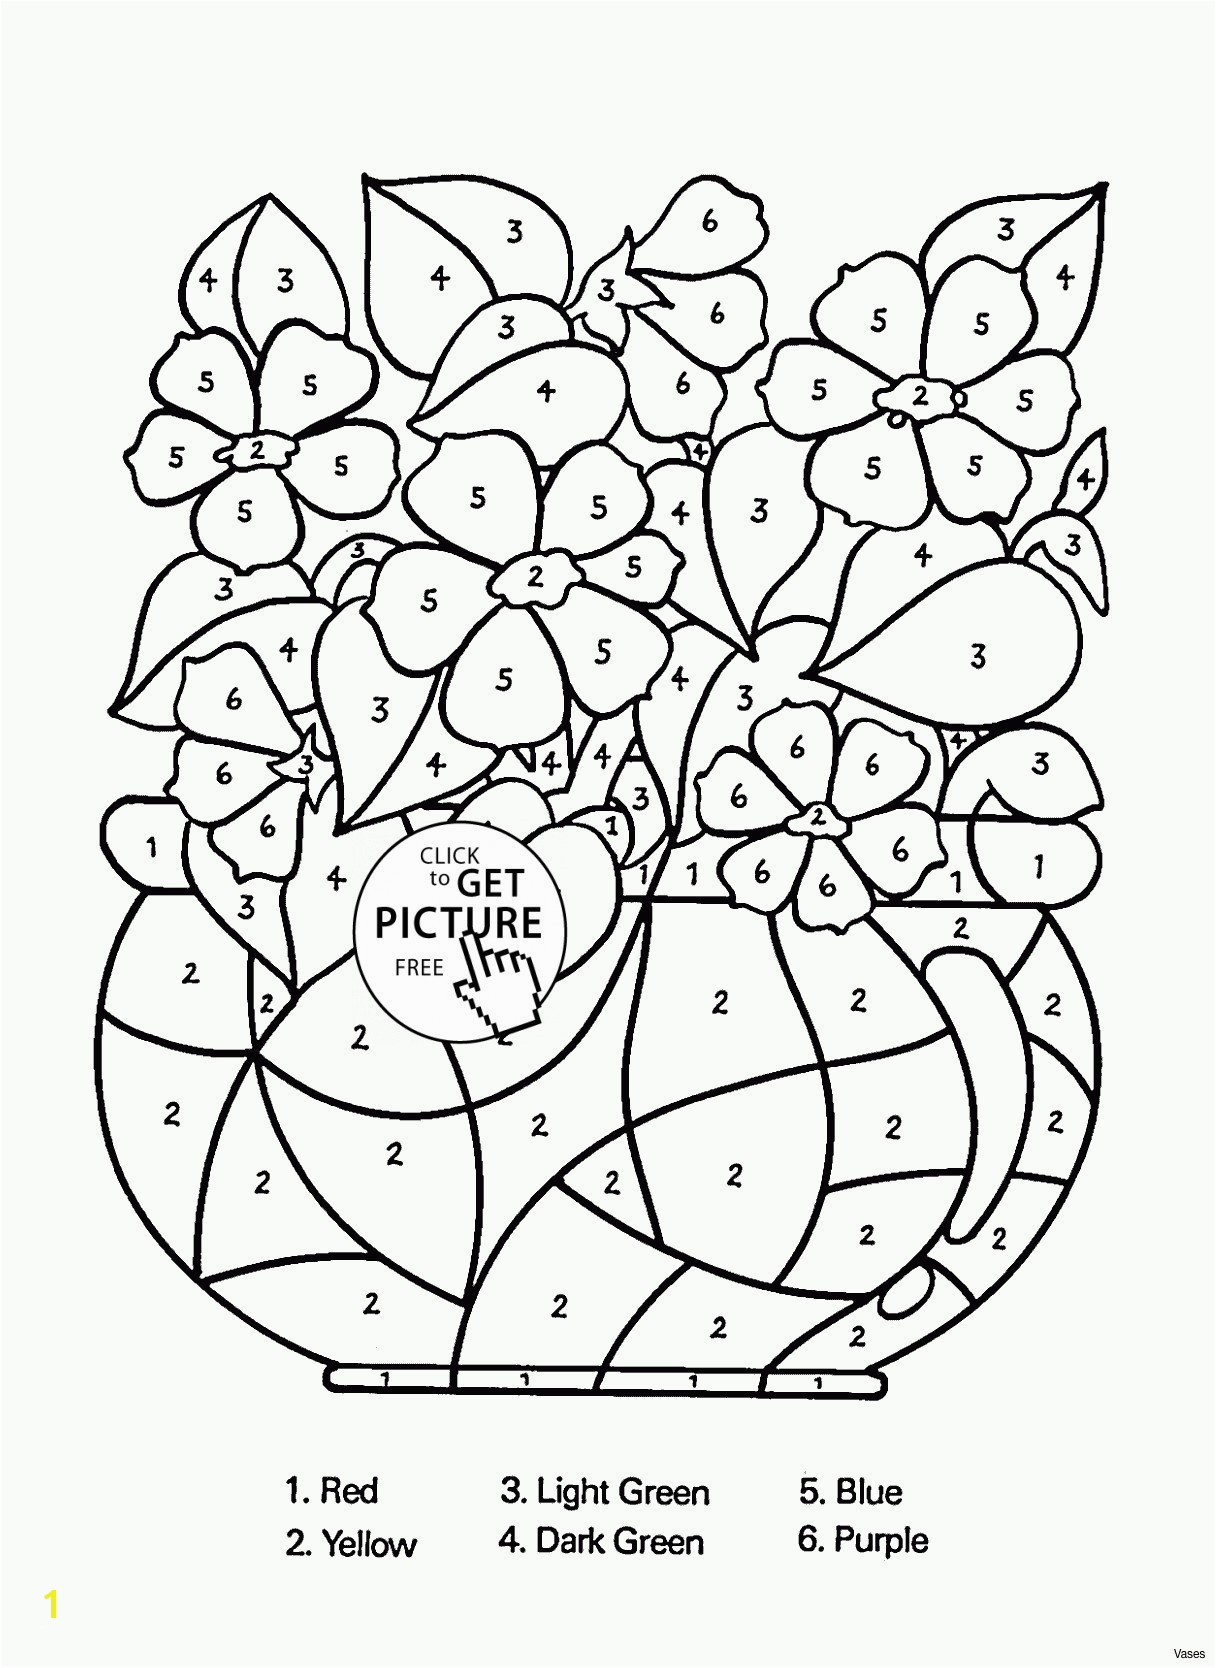 Disney Princess Holiday Coloring Pages Inspirational Color by Number Coloring Books for Kids Heathermarxgallery Gallery